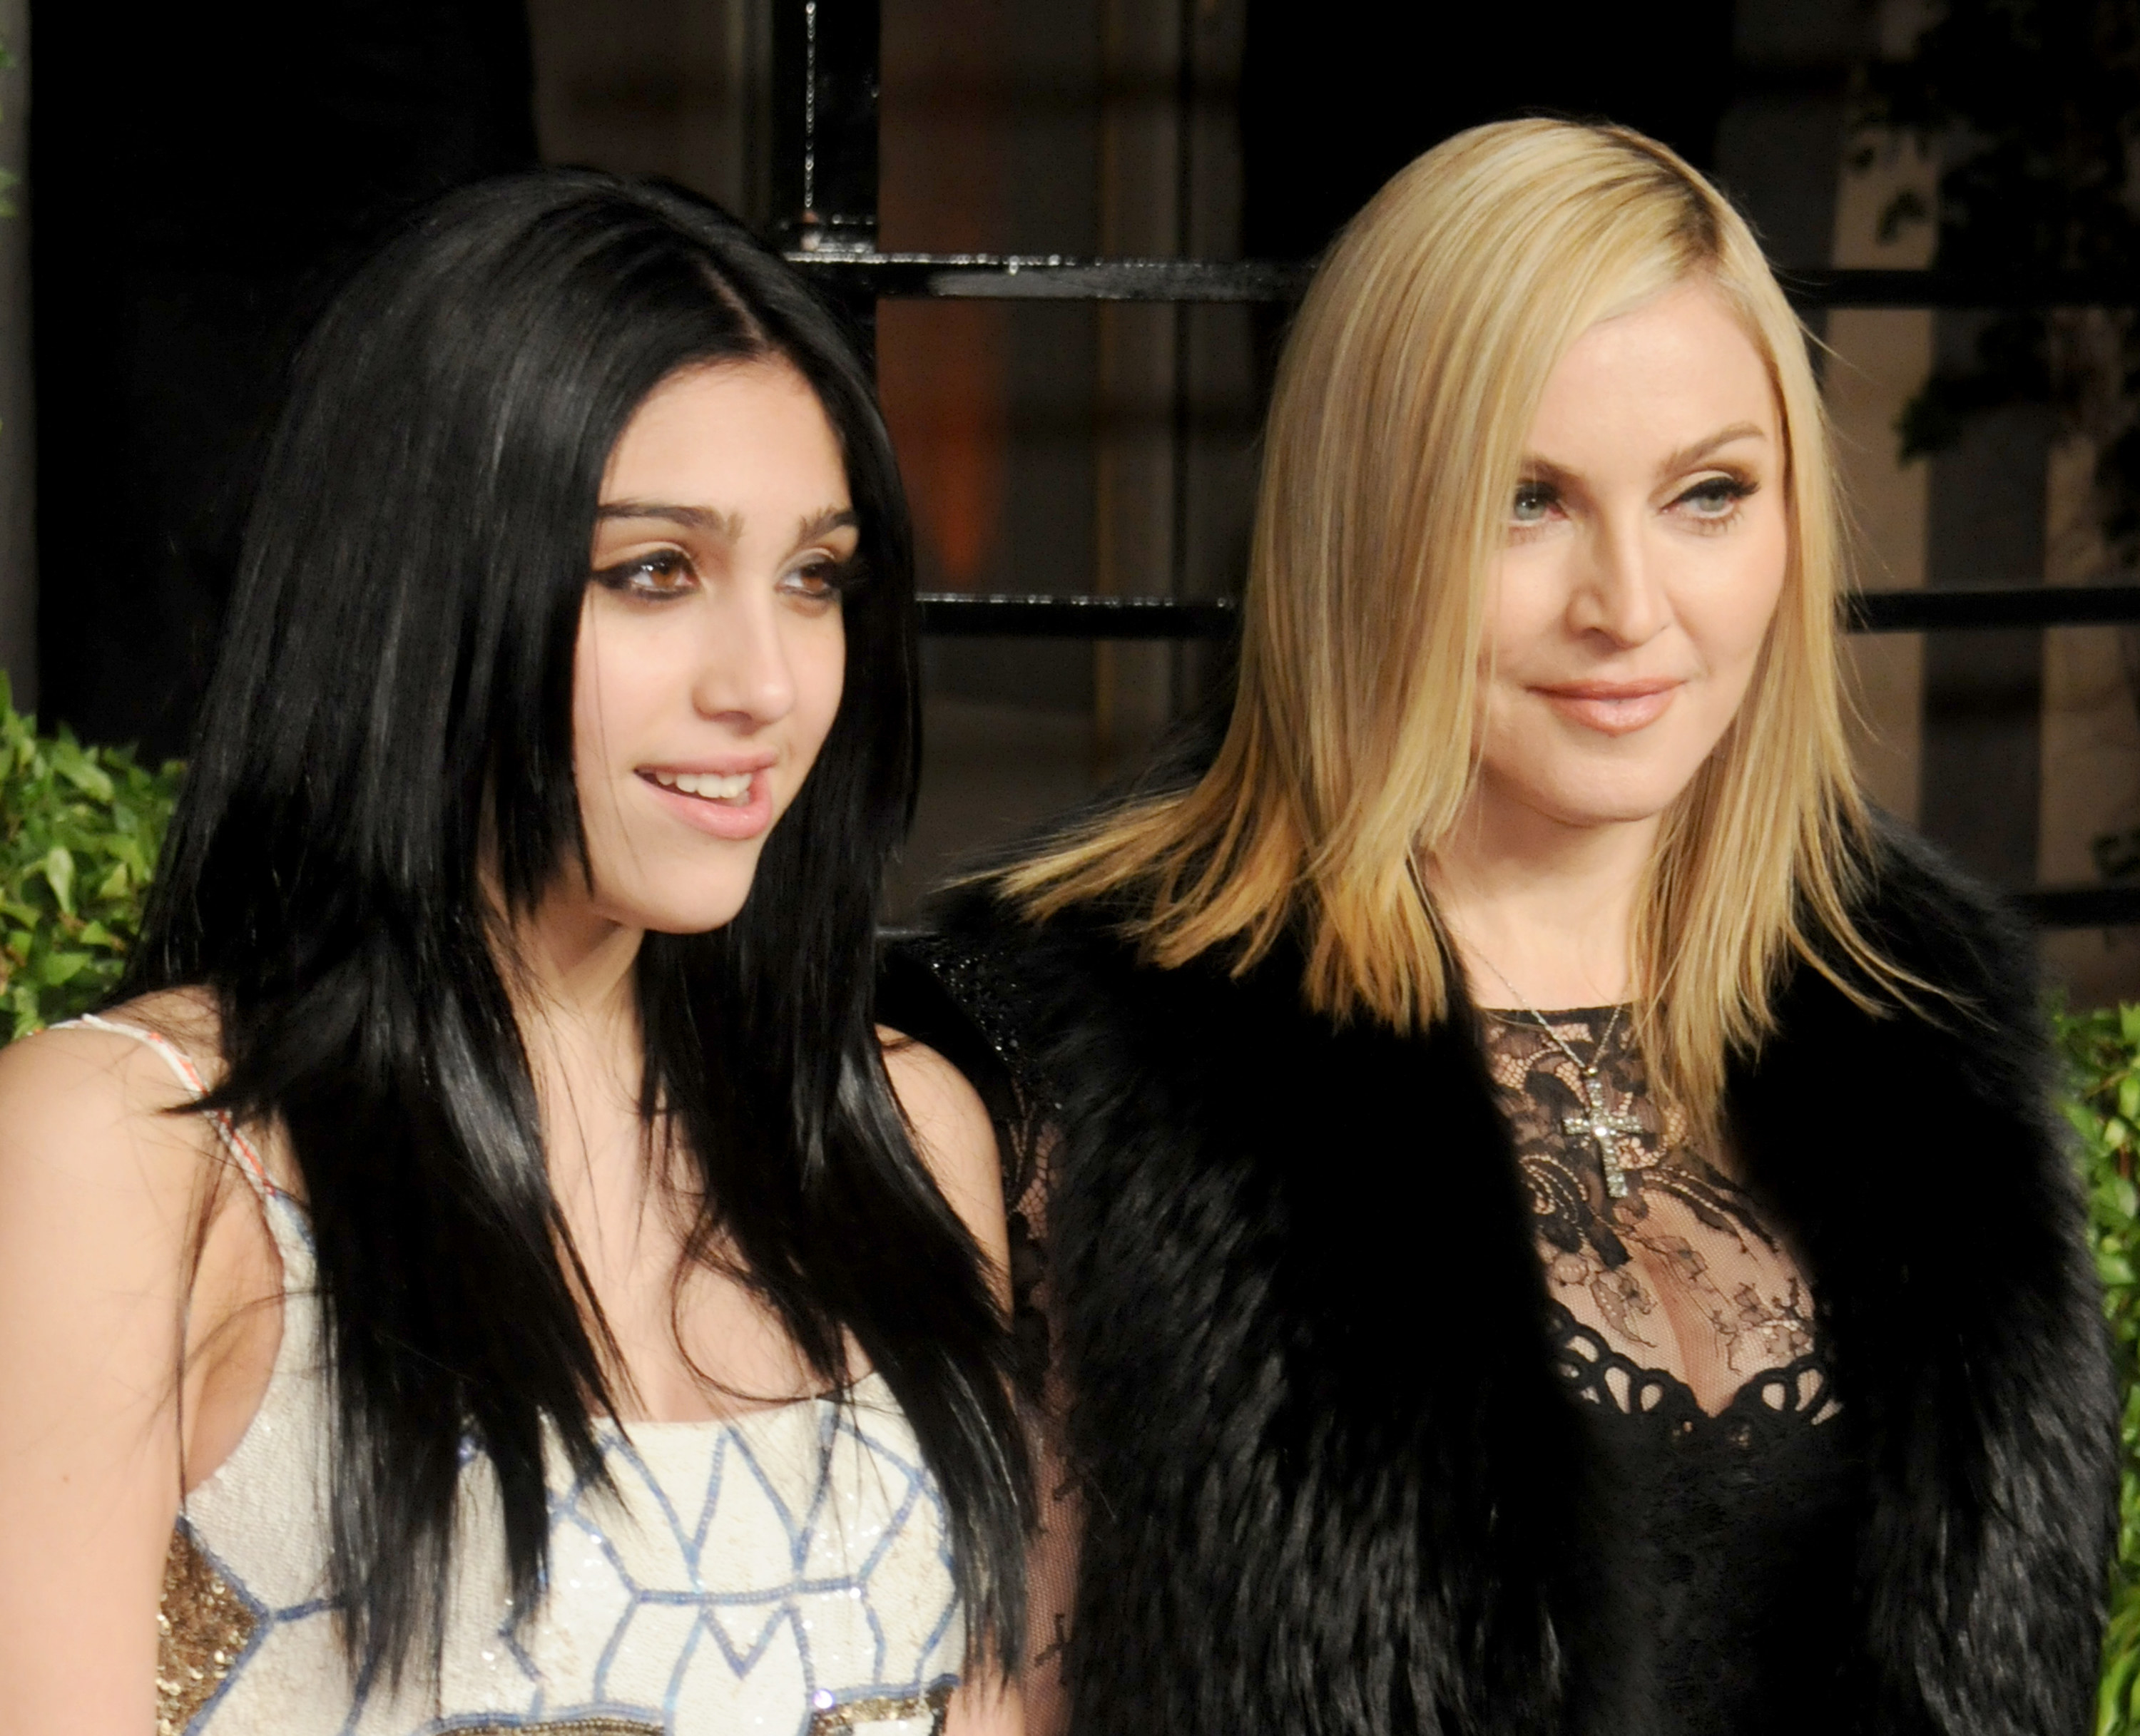 Lourdes Leon and Madonna posing on a red carpet in fancy dresses